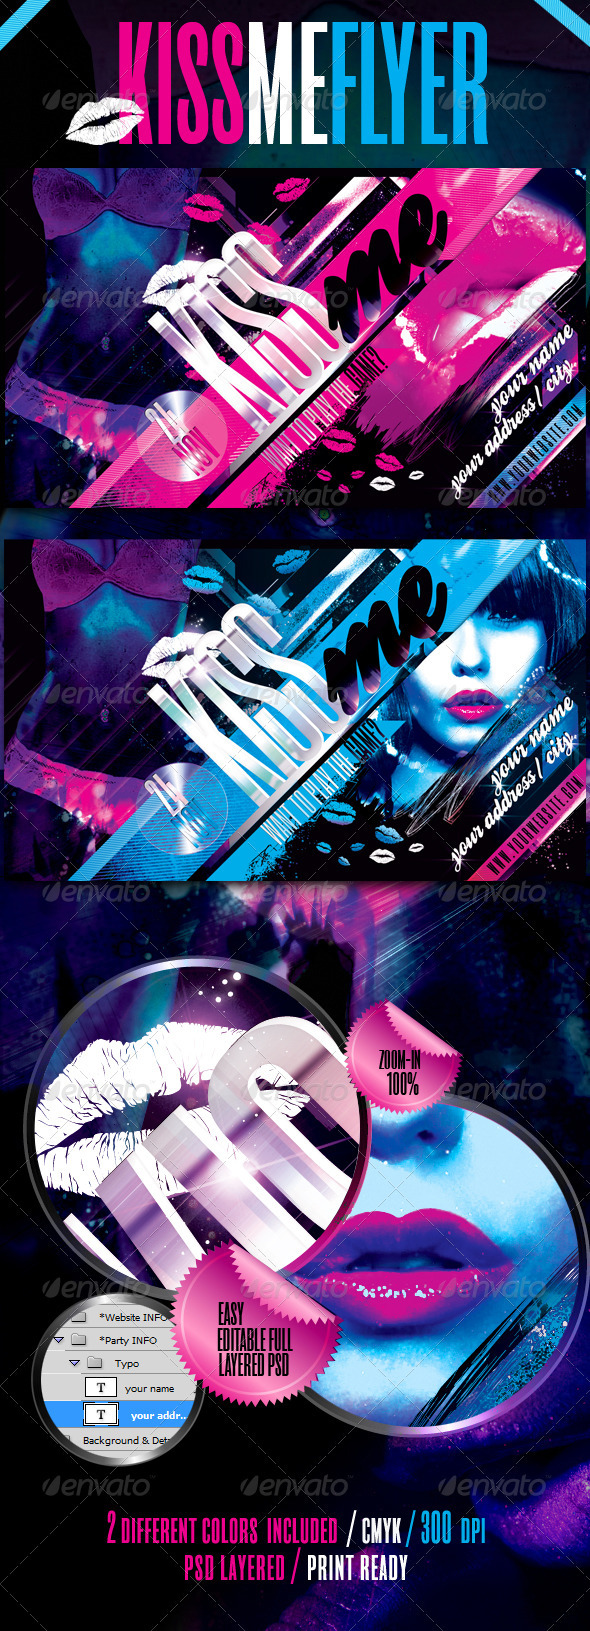 Kiss Me Flyer Template - Clubs & Parties Events